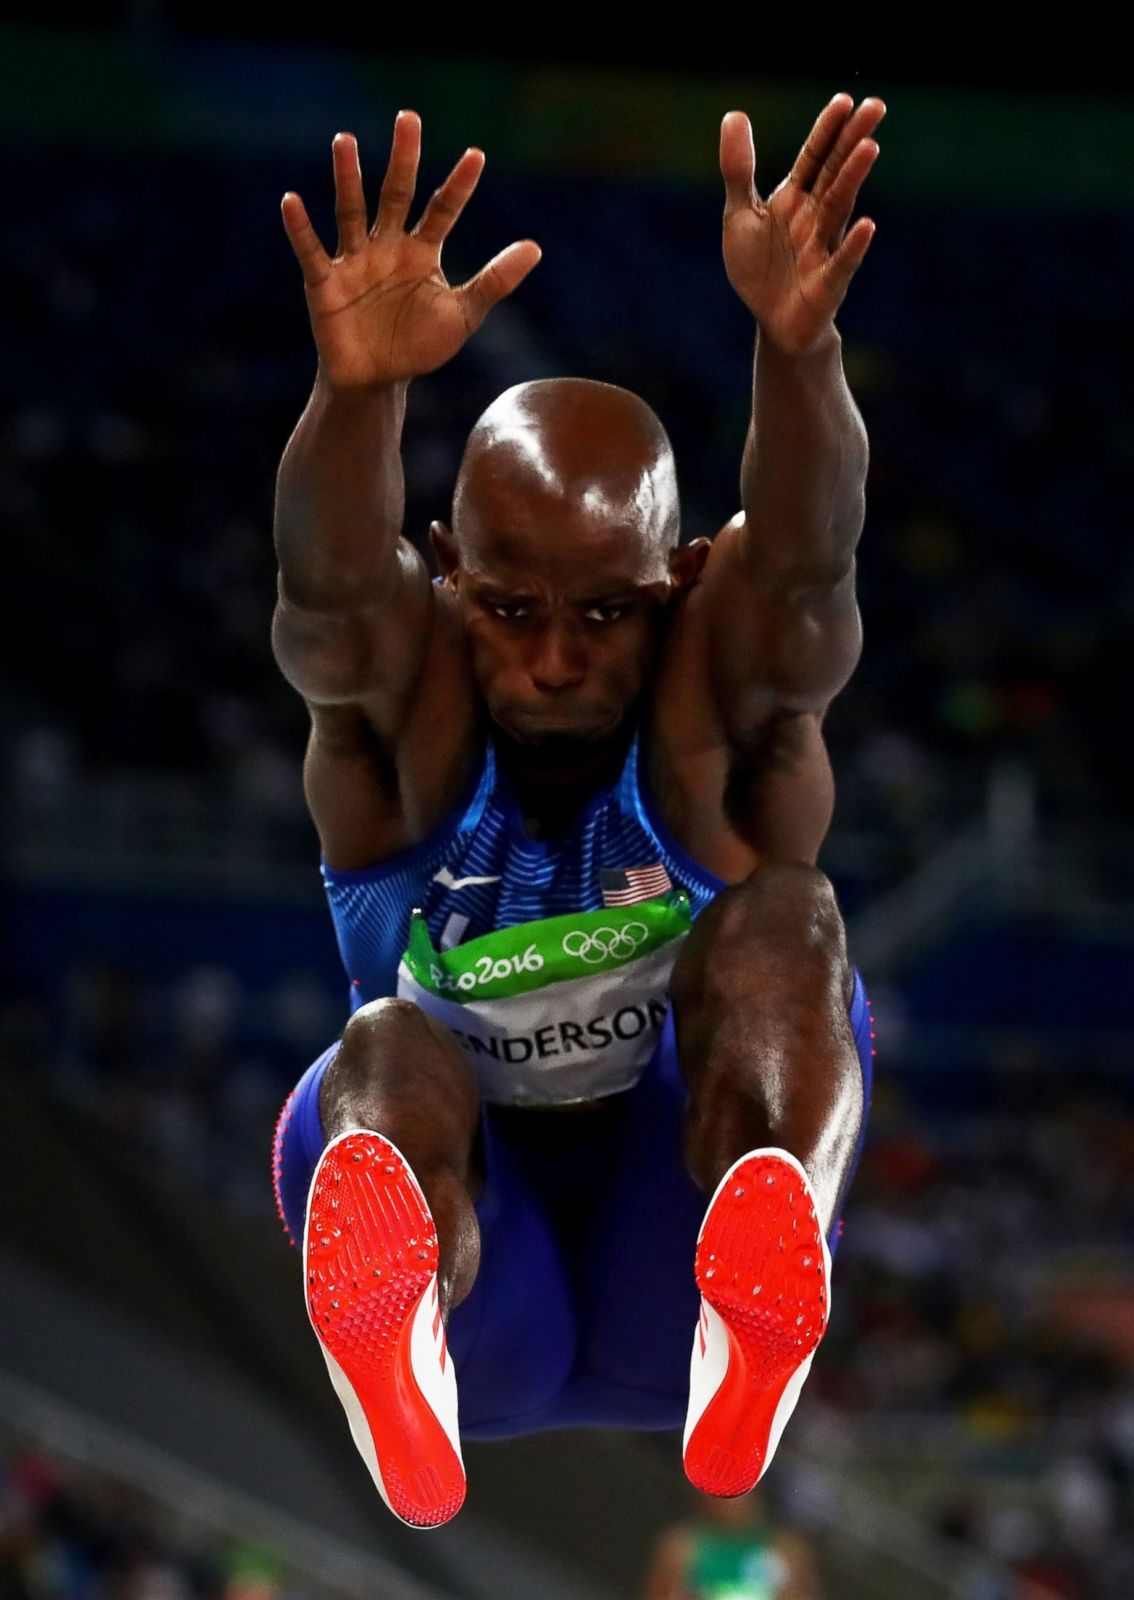 Jeff Henderson of the United States wins the gold medal in